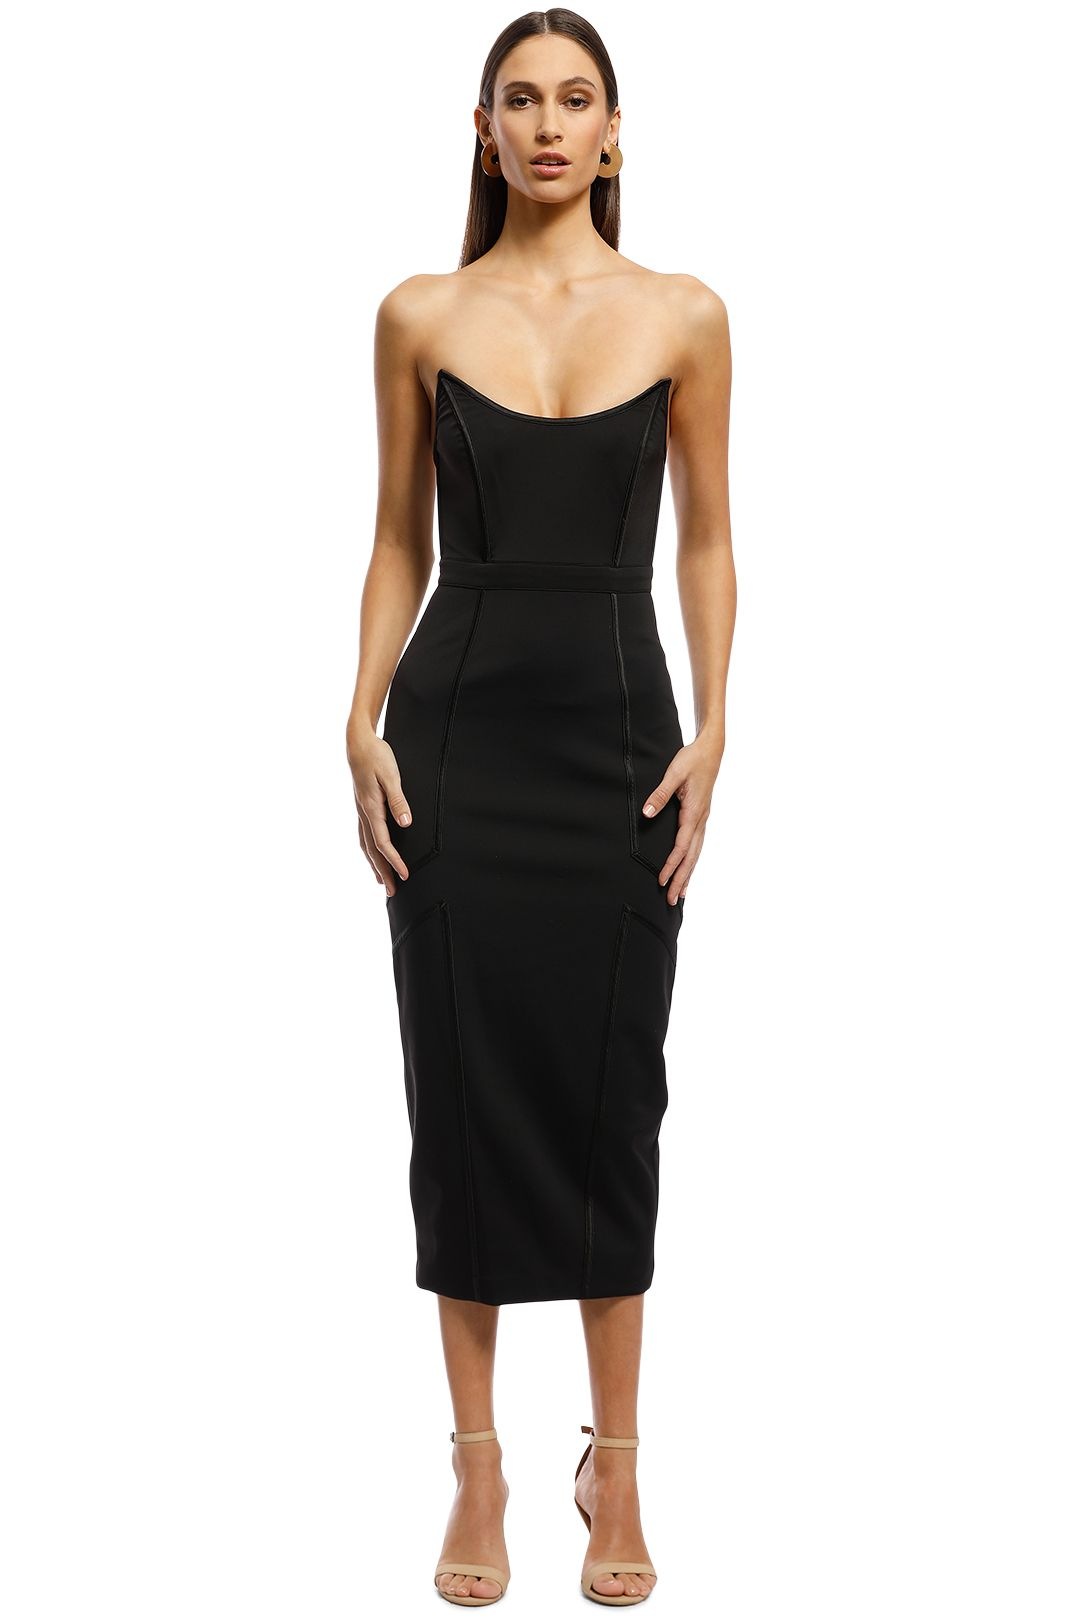 Misha Collection - Lea Dress - Black - Front